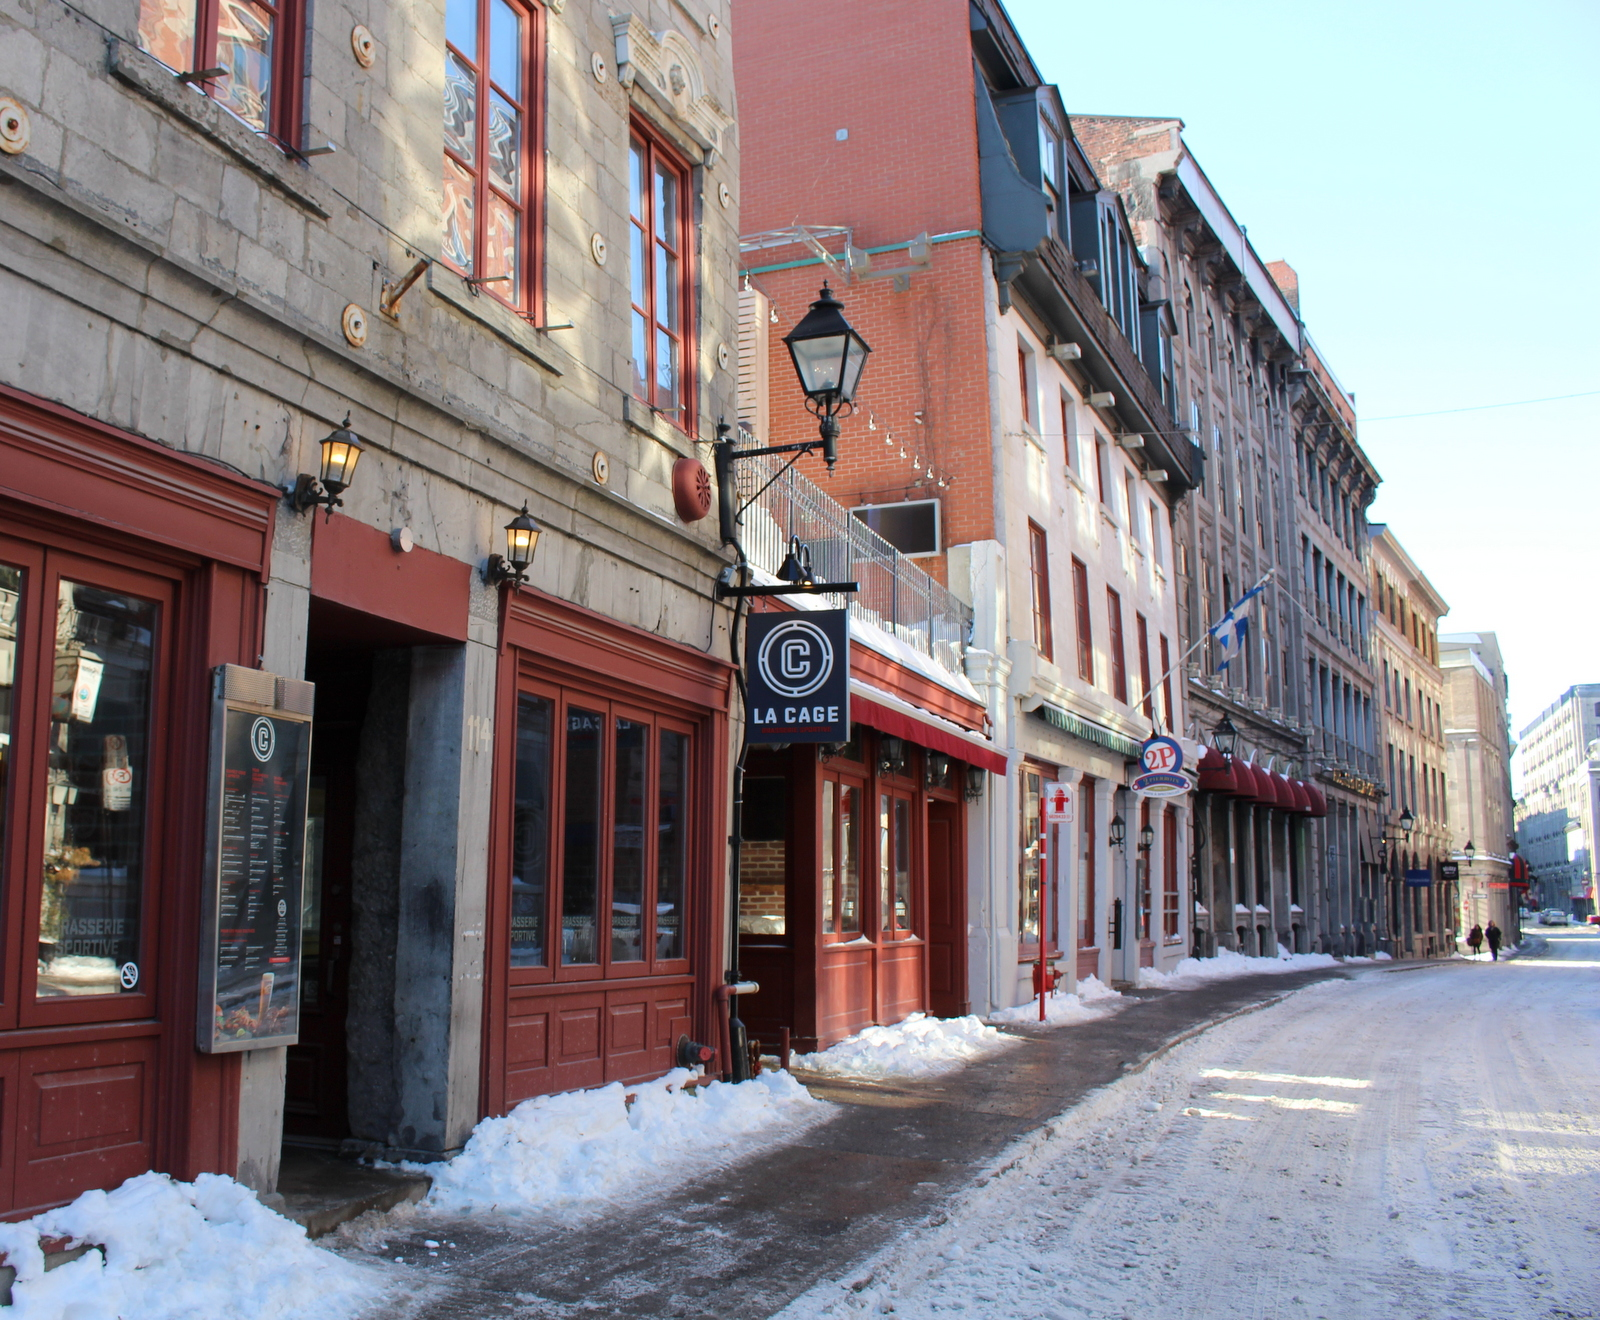 The Streets of Old Montreal (Vieux-Montréal)